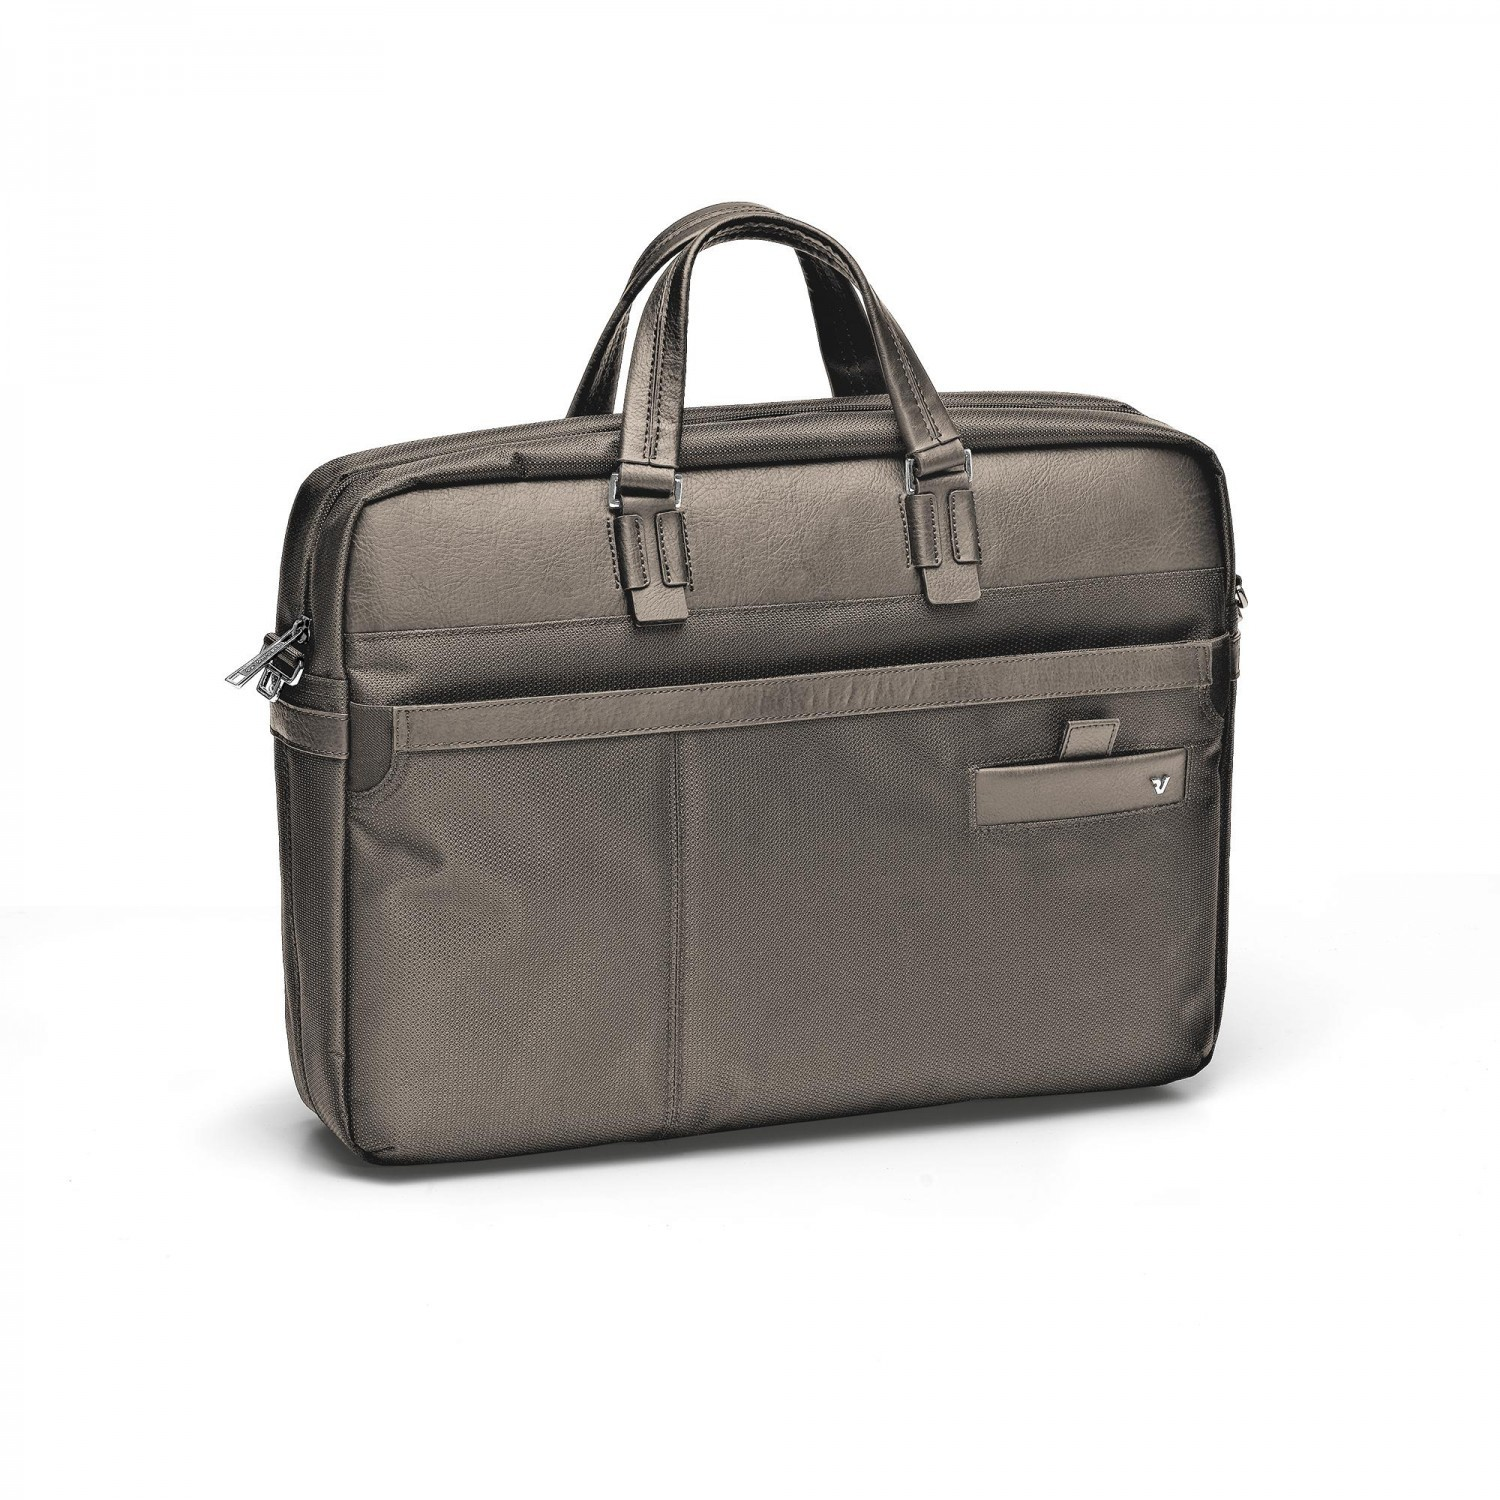 Сумка Roncato Harvard LAPTOP BAG 1 comp. Ecru